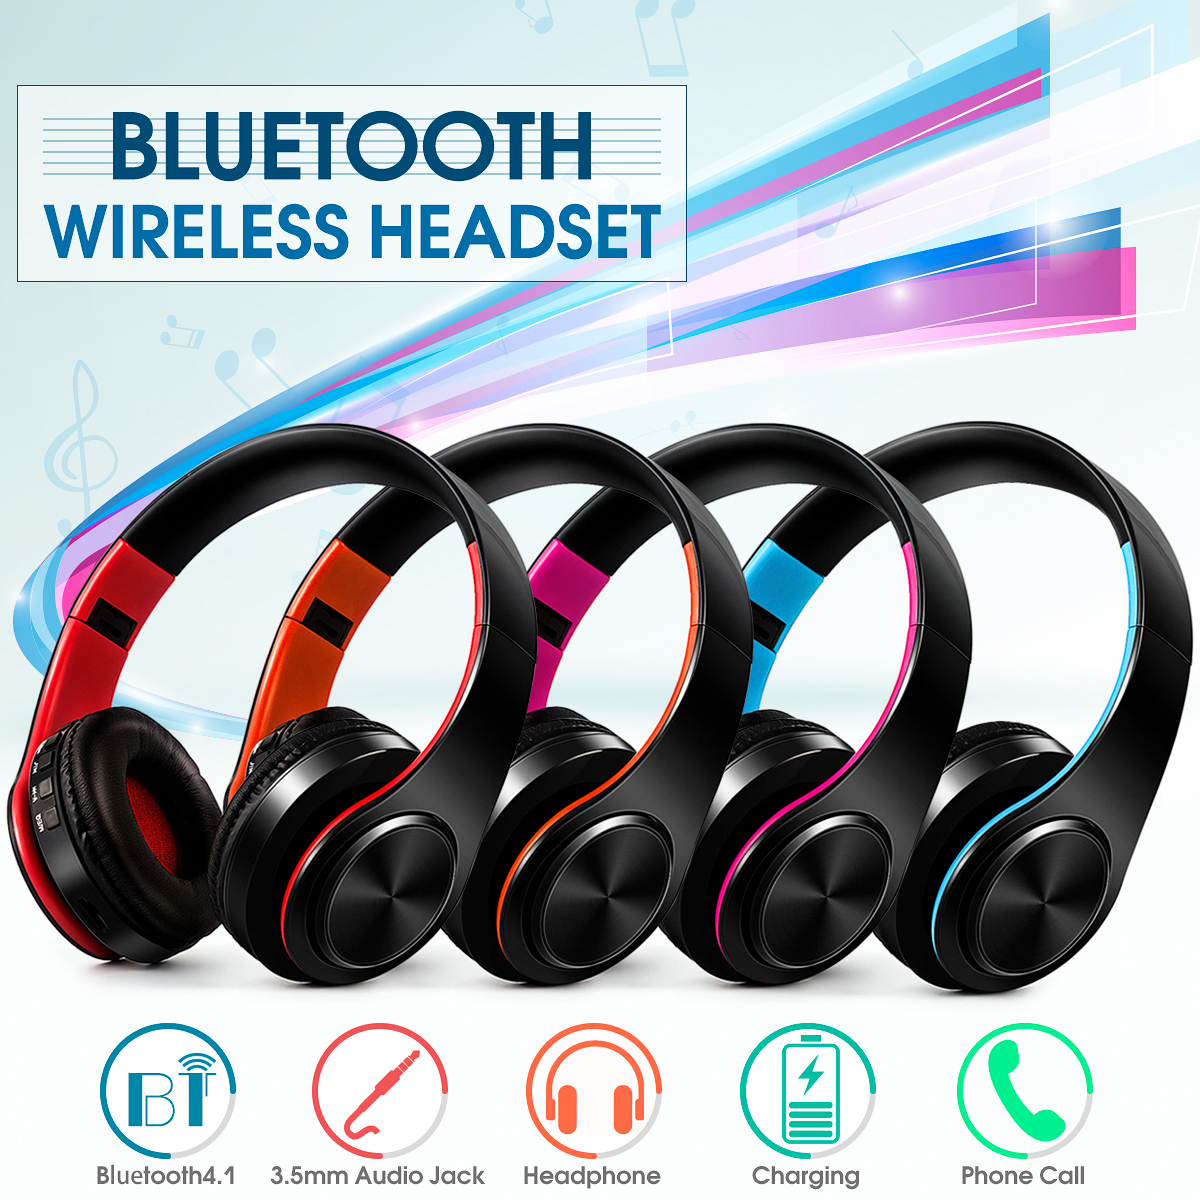 Noise Cancelling Mic Hifi Stereo Bass Bluetooth 4.0 A2DP Foldable Game Sport Headphone Headset Over Ear Wireless/Wired FM Radio TF AUX for Iphone S amsung S8 L G Nokia Tablet PC T